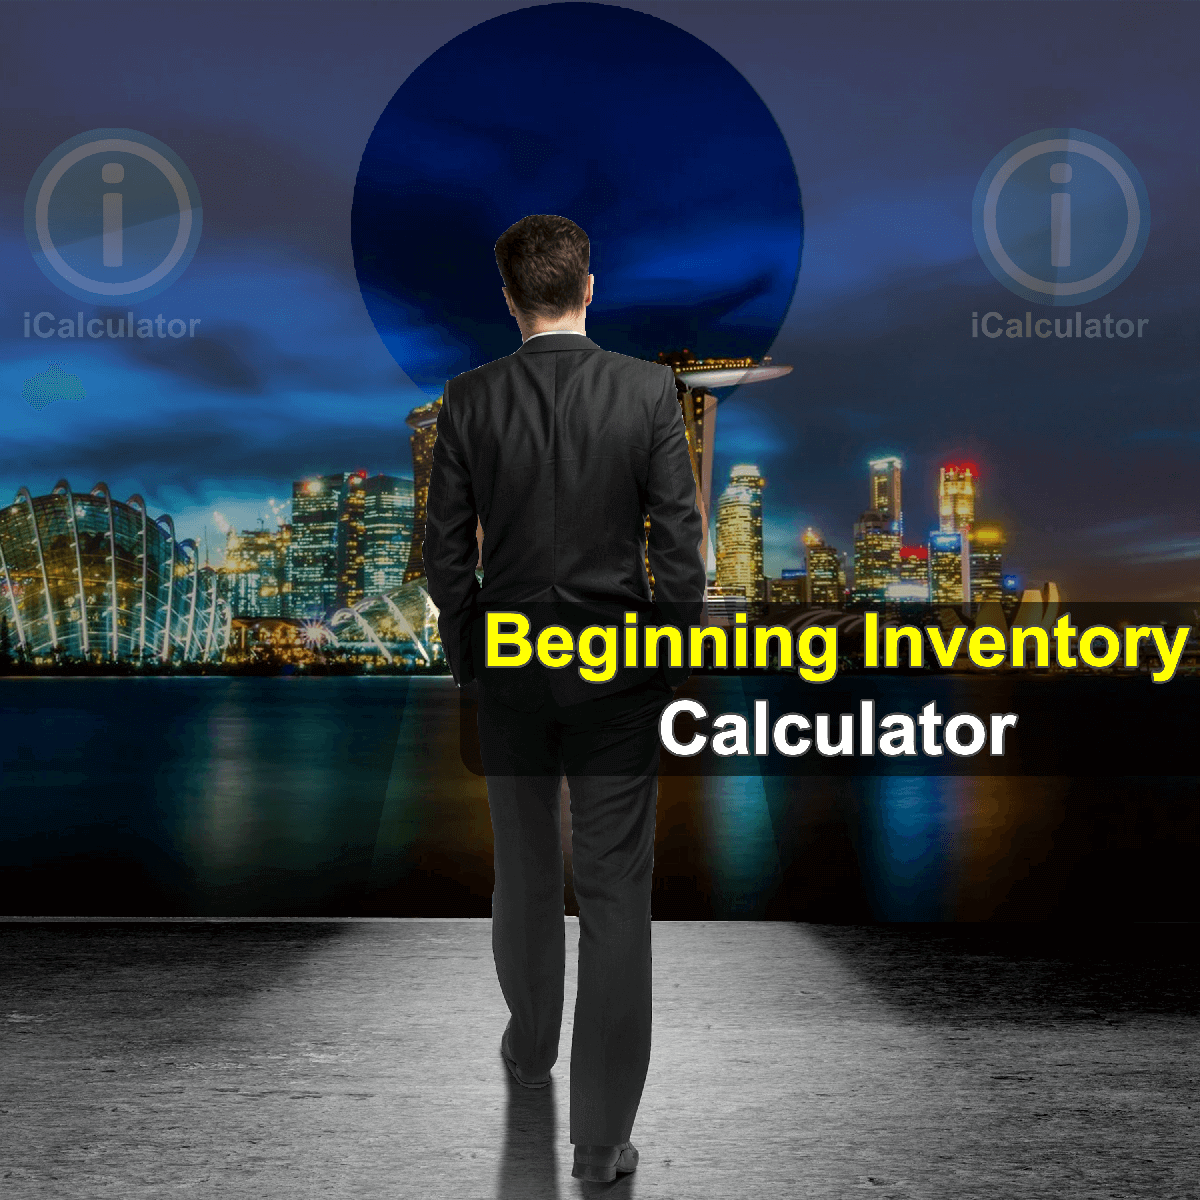 Beginning Inventory Calculator. This image provides details of how to calculate beginning inventory using a calculator and notepad. By using the Beginning Inventory formula, the Beginning Inventory Calculator provides a true calculation of the cash value of a company's inventory at the beginning of a new accounting period